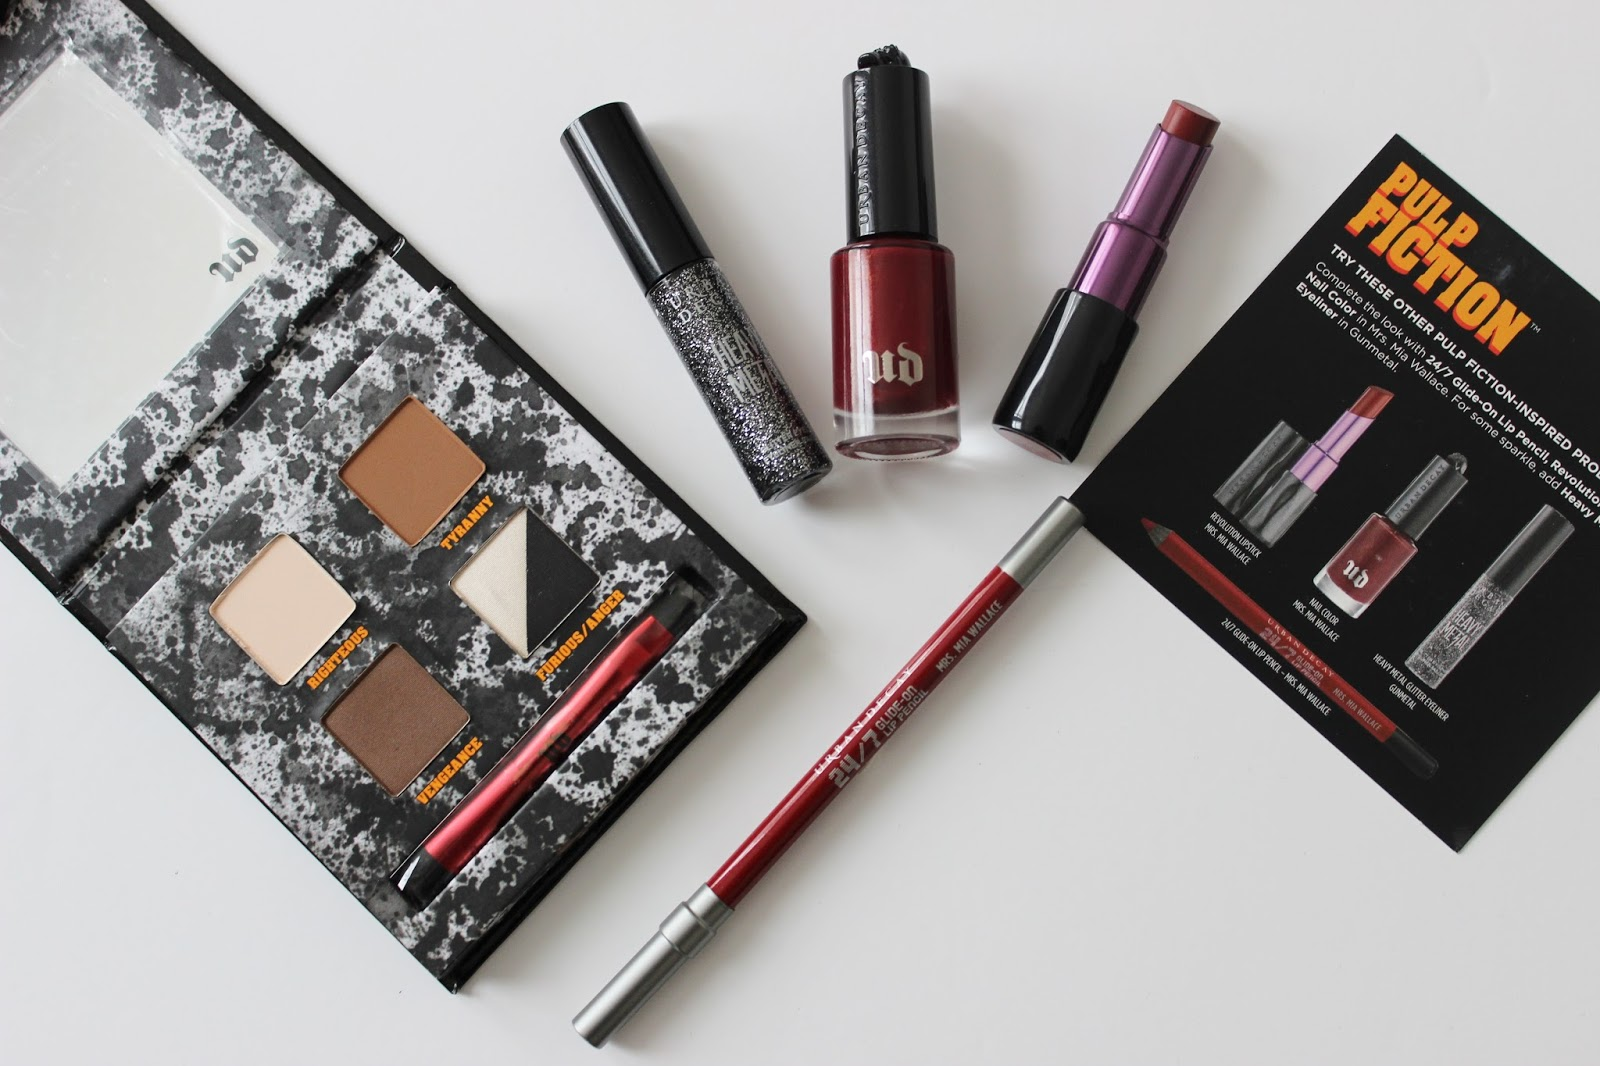 Urban Decay Pulp Fiction makeup collection